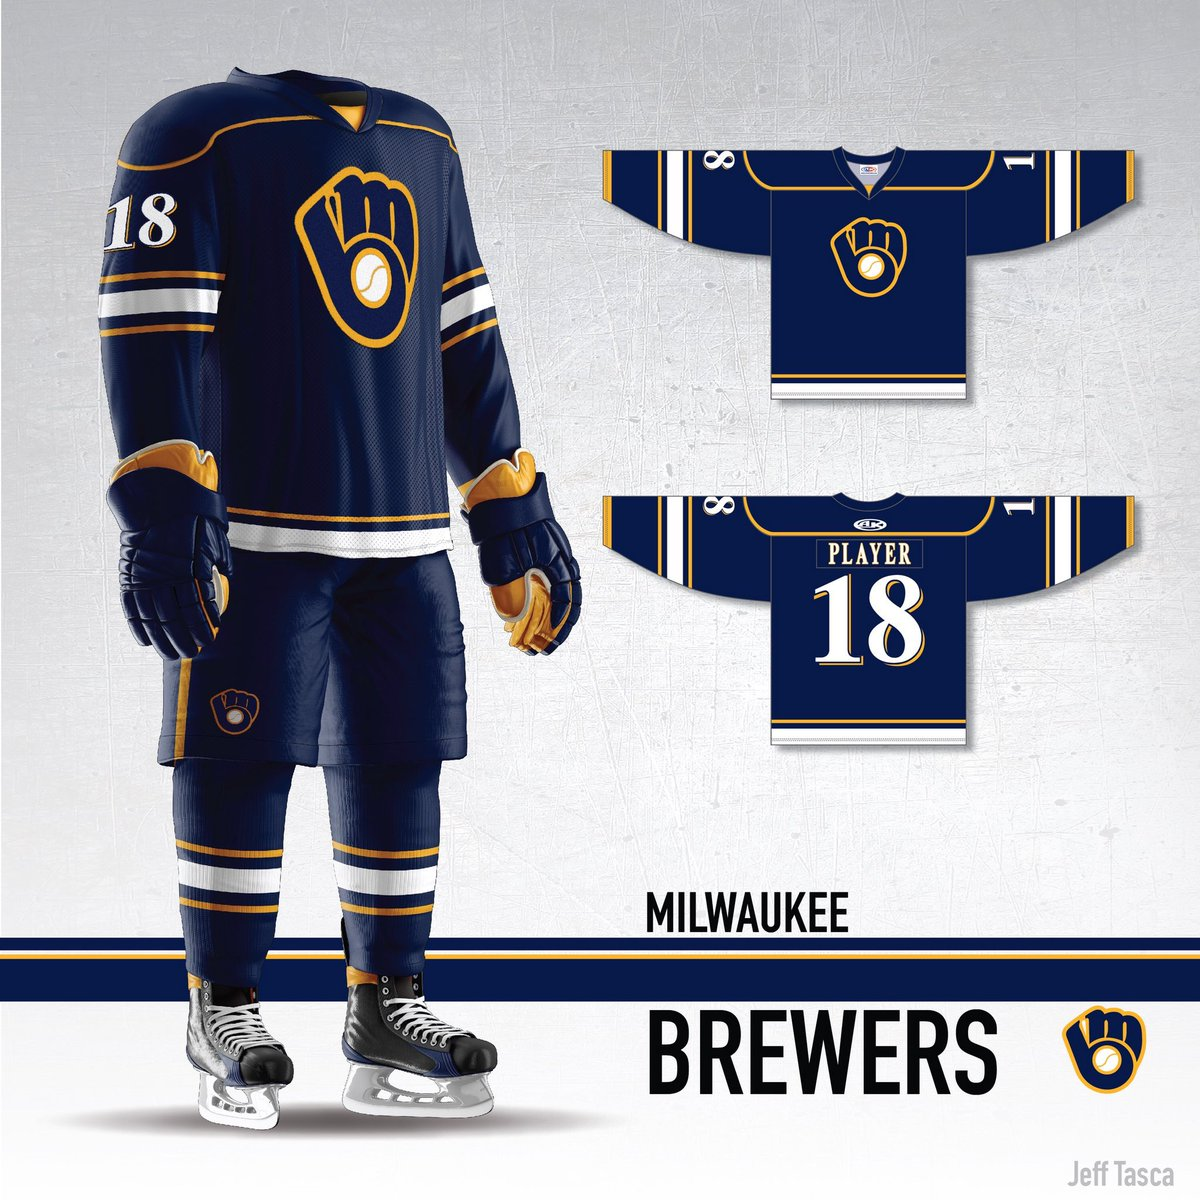 a9aa8ff5a AWESOME  brewers hockey concept jerseys by the amazing  j tasca - two  versions